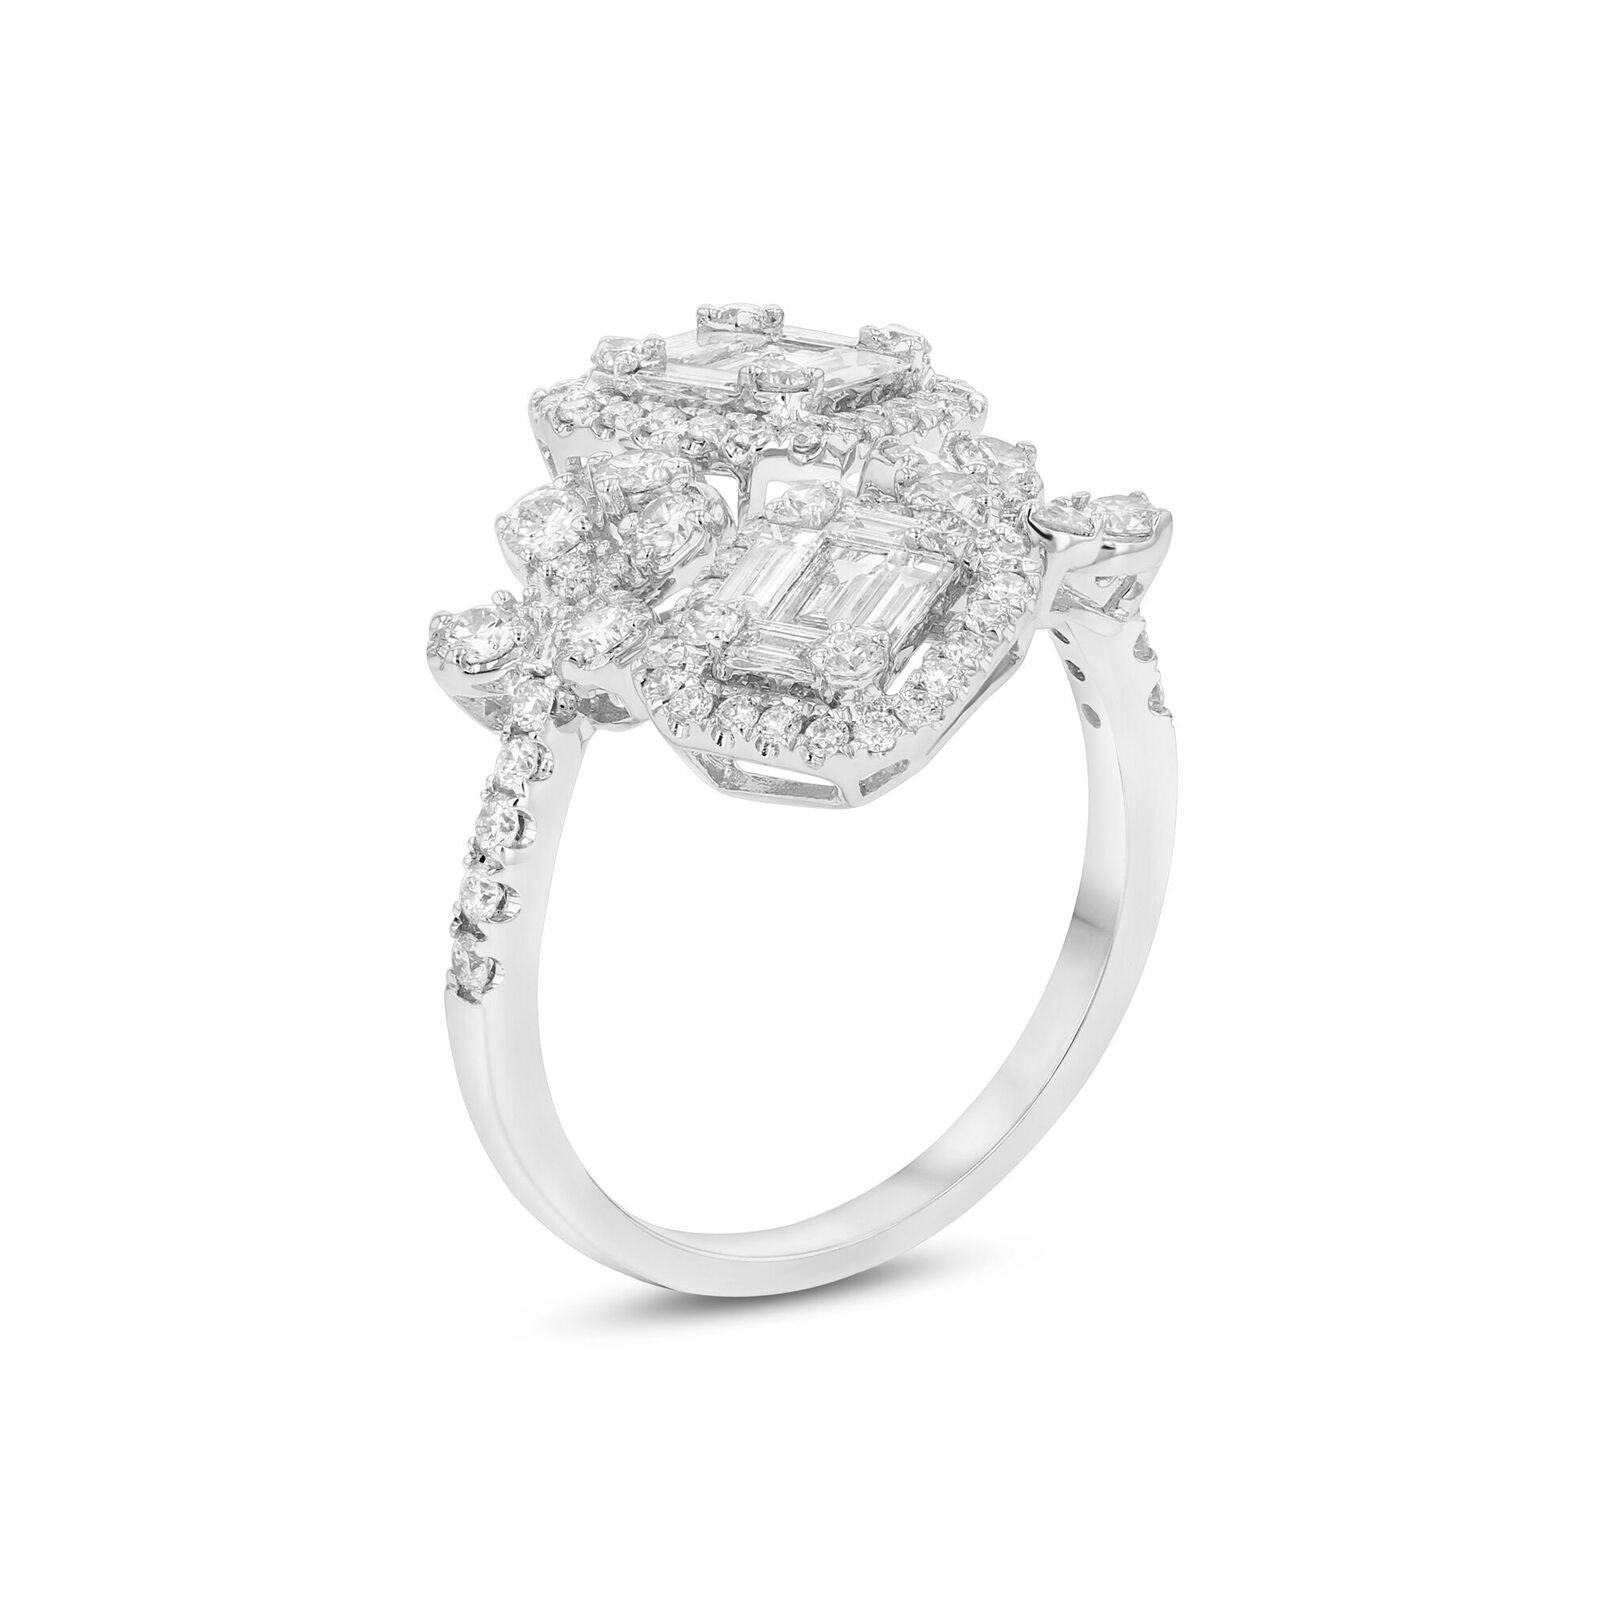 Fabulous Diamond Statement Cocktail Ring, 18K White Gold